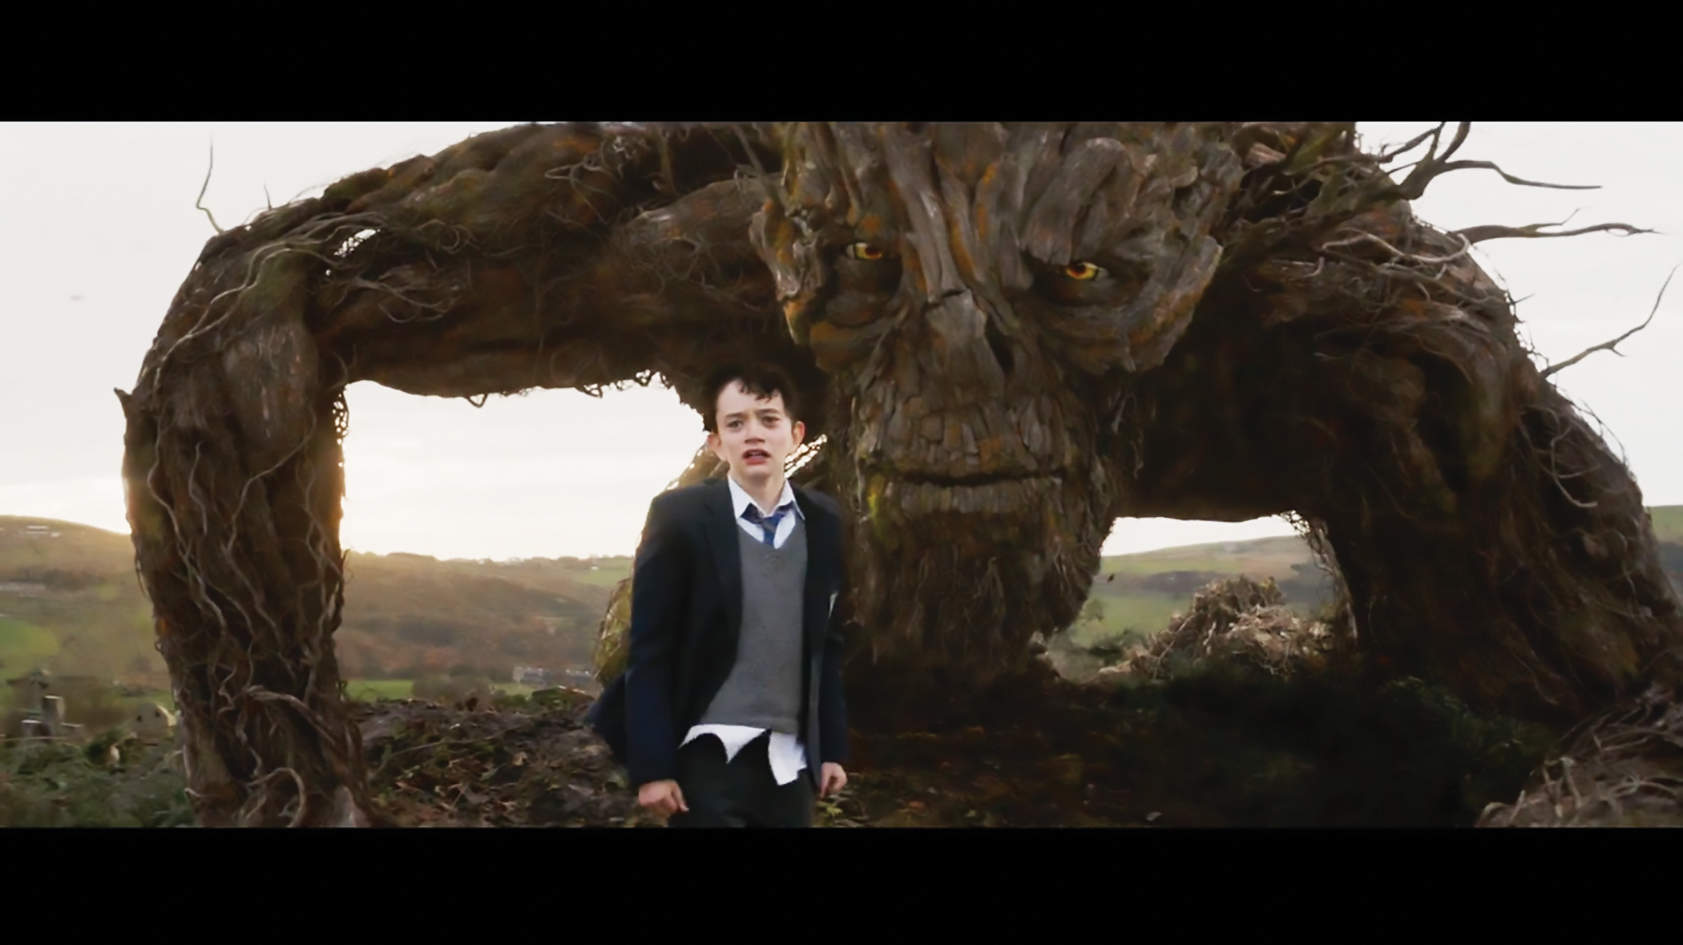 A Monster Calls reminds us there's only one way to live: messily ever after